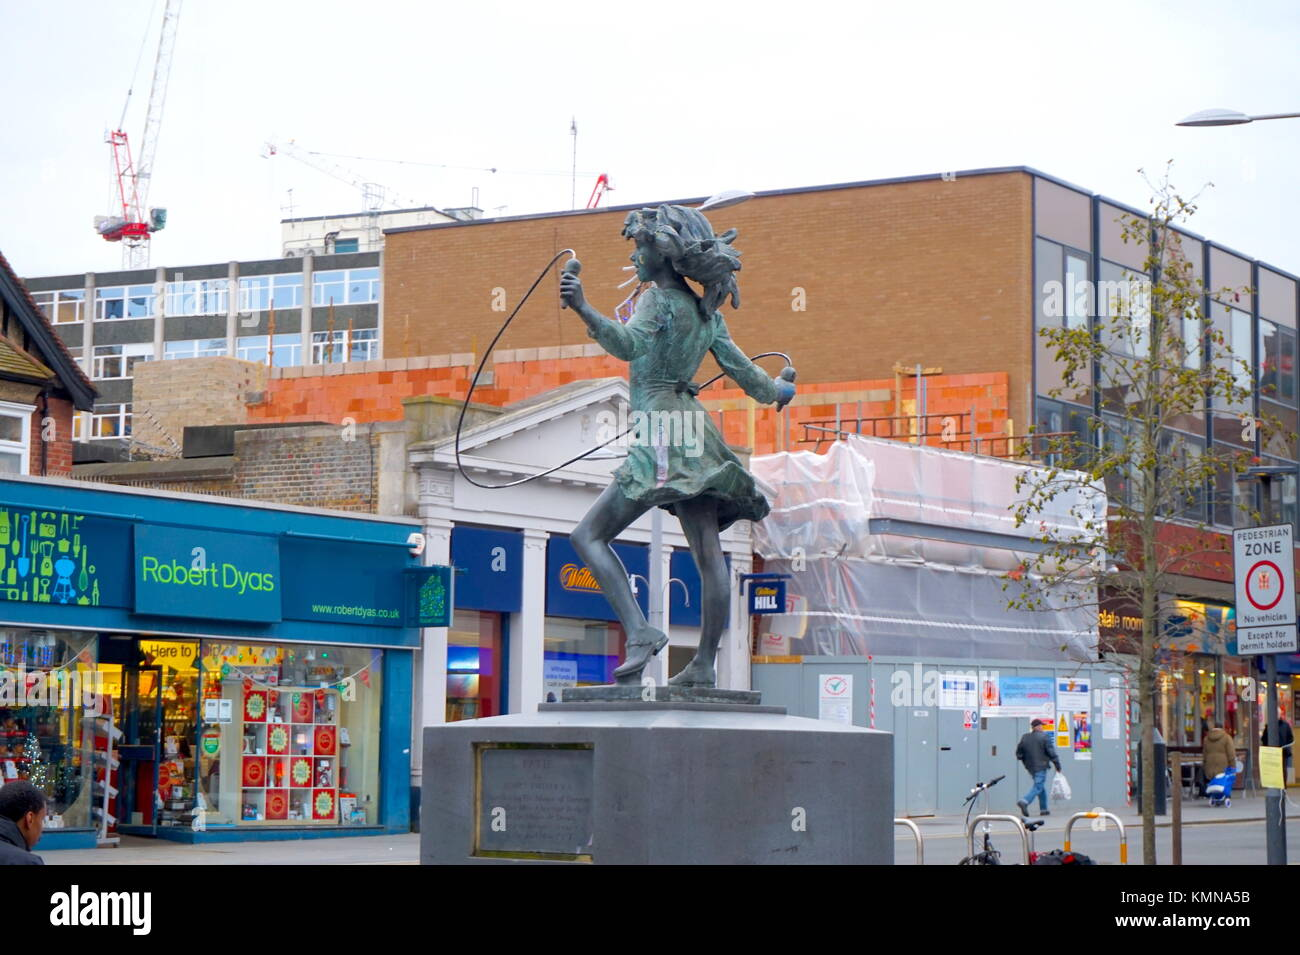 Statue of the skipping girl in Harrow shopping centre, Station Road, London, United Kingdom - Stock Image